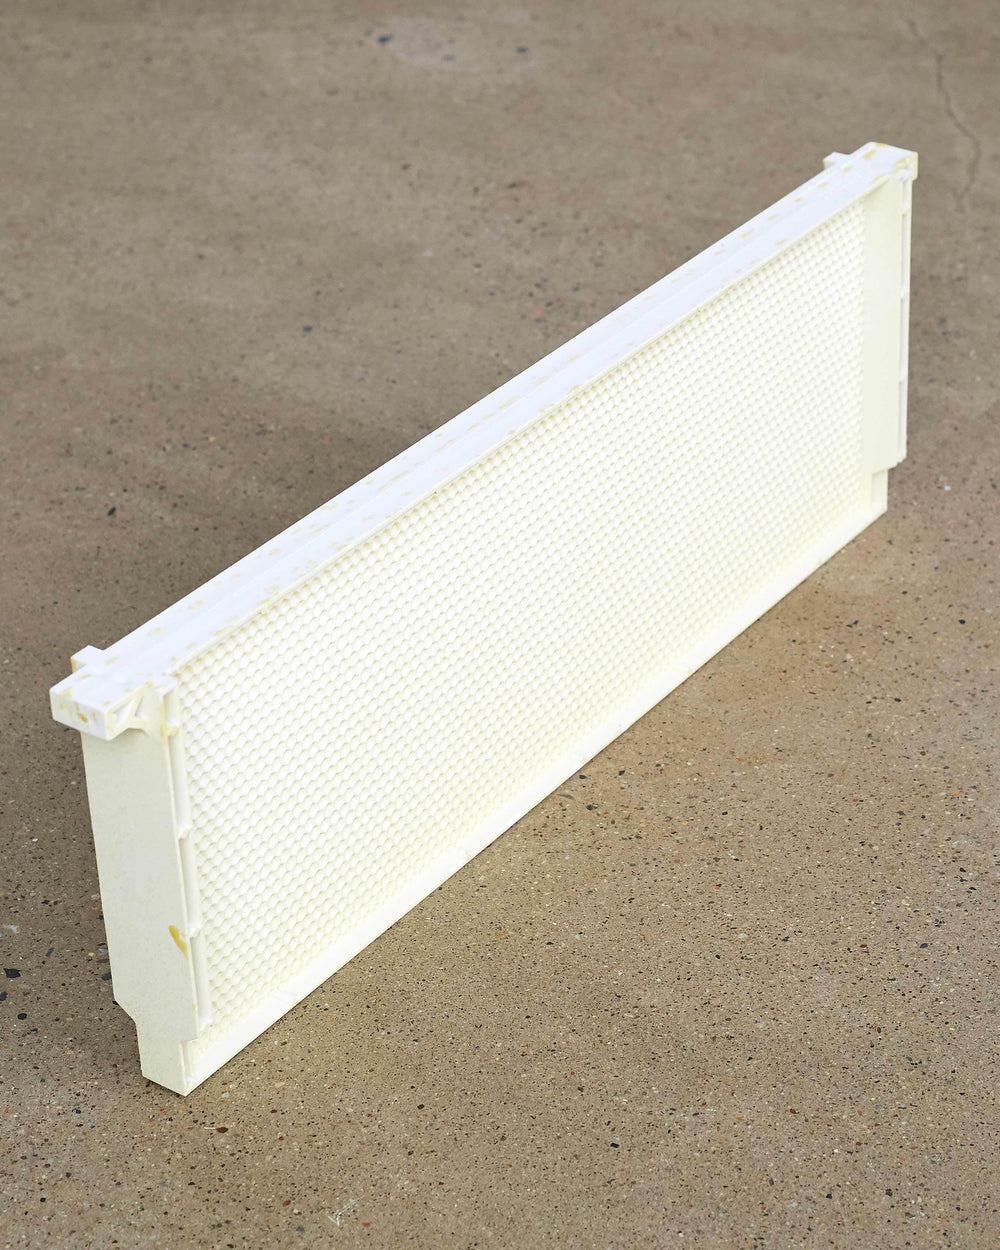 "6 1/4"" (Medium) White One Piece Plastic Frame"